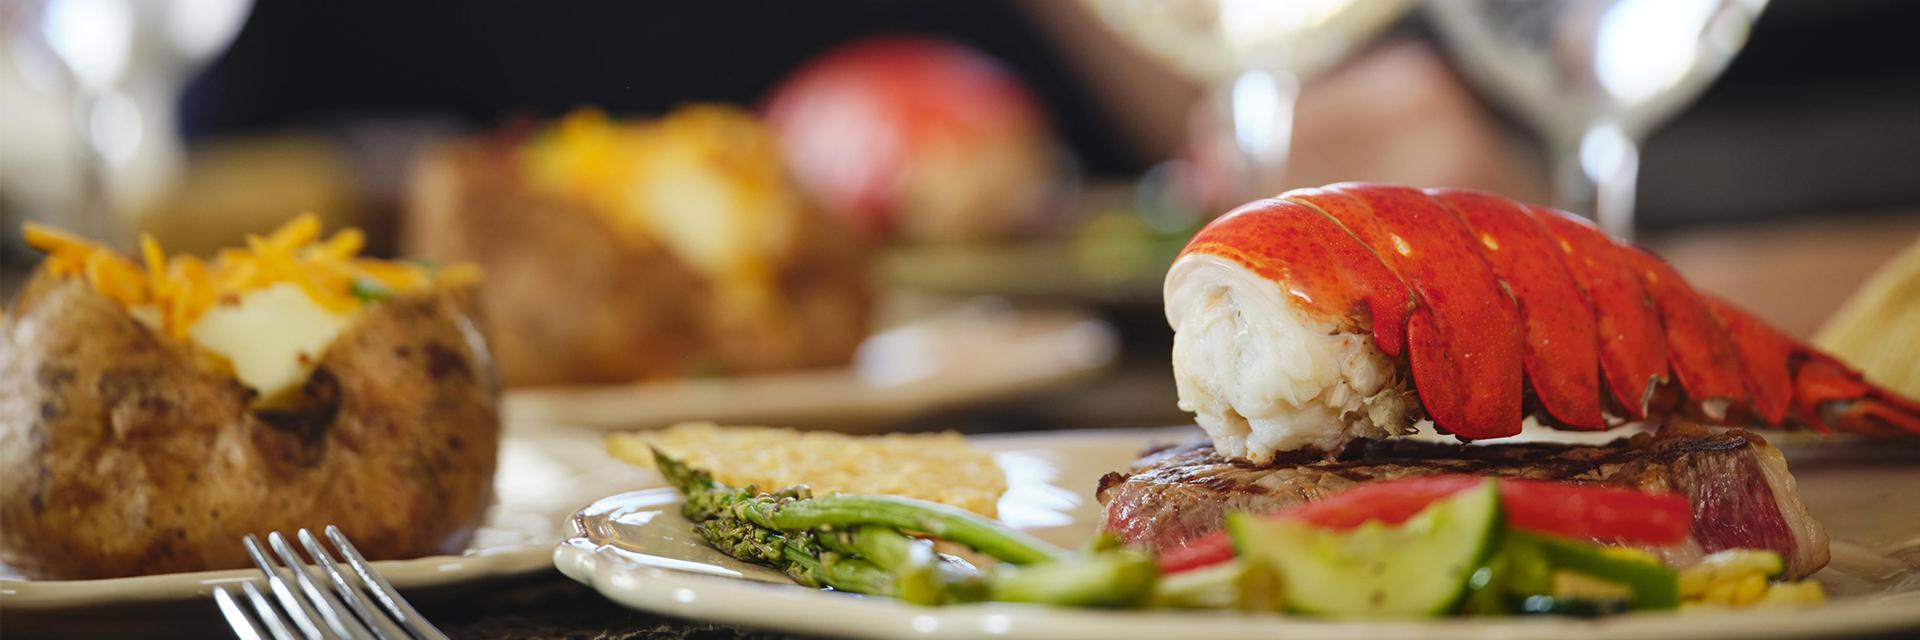 Luxury dinner with lobster and potato